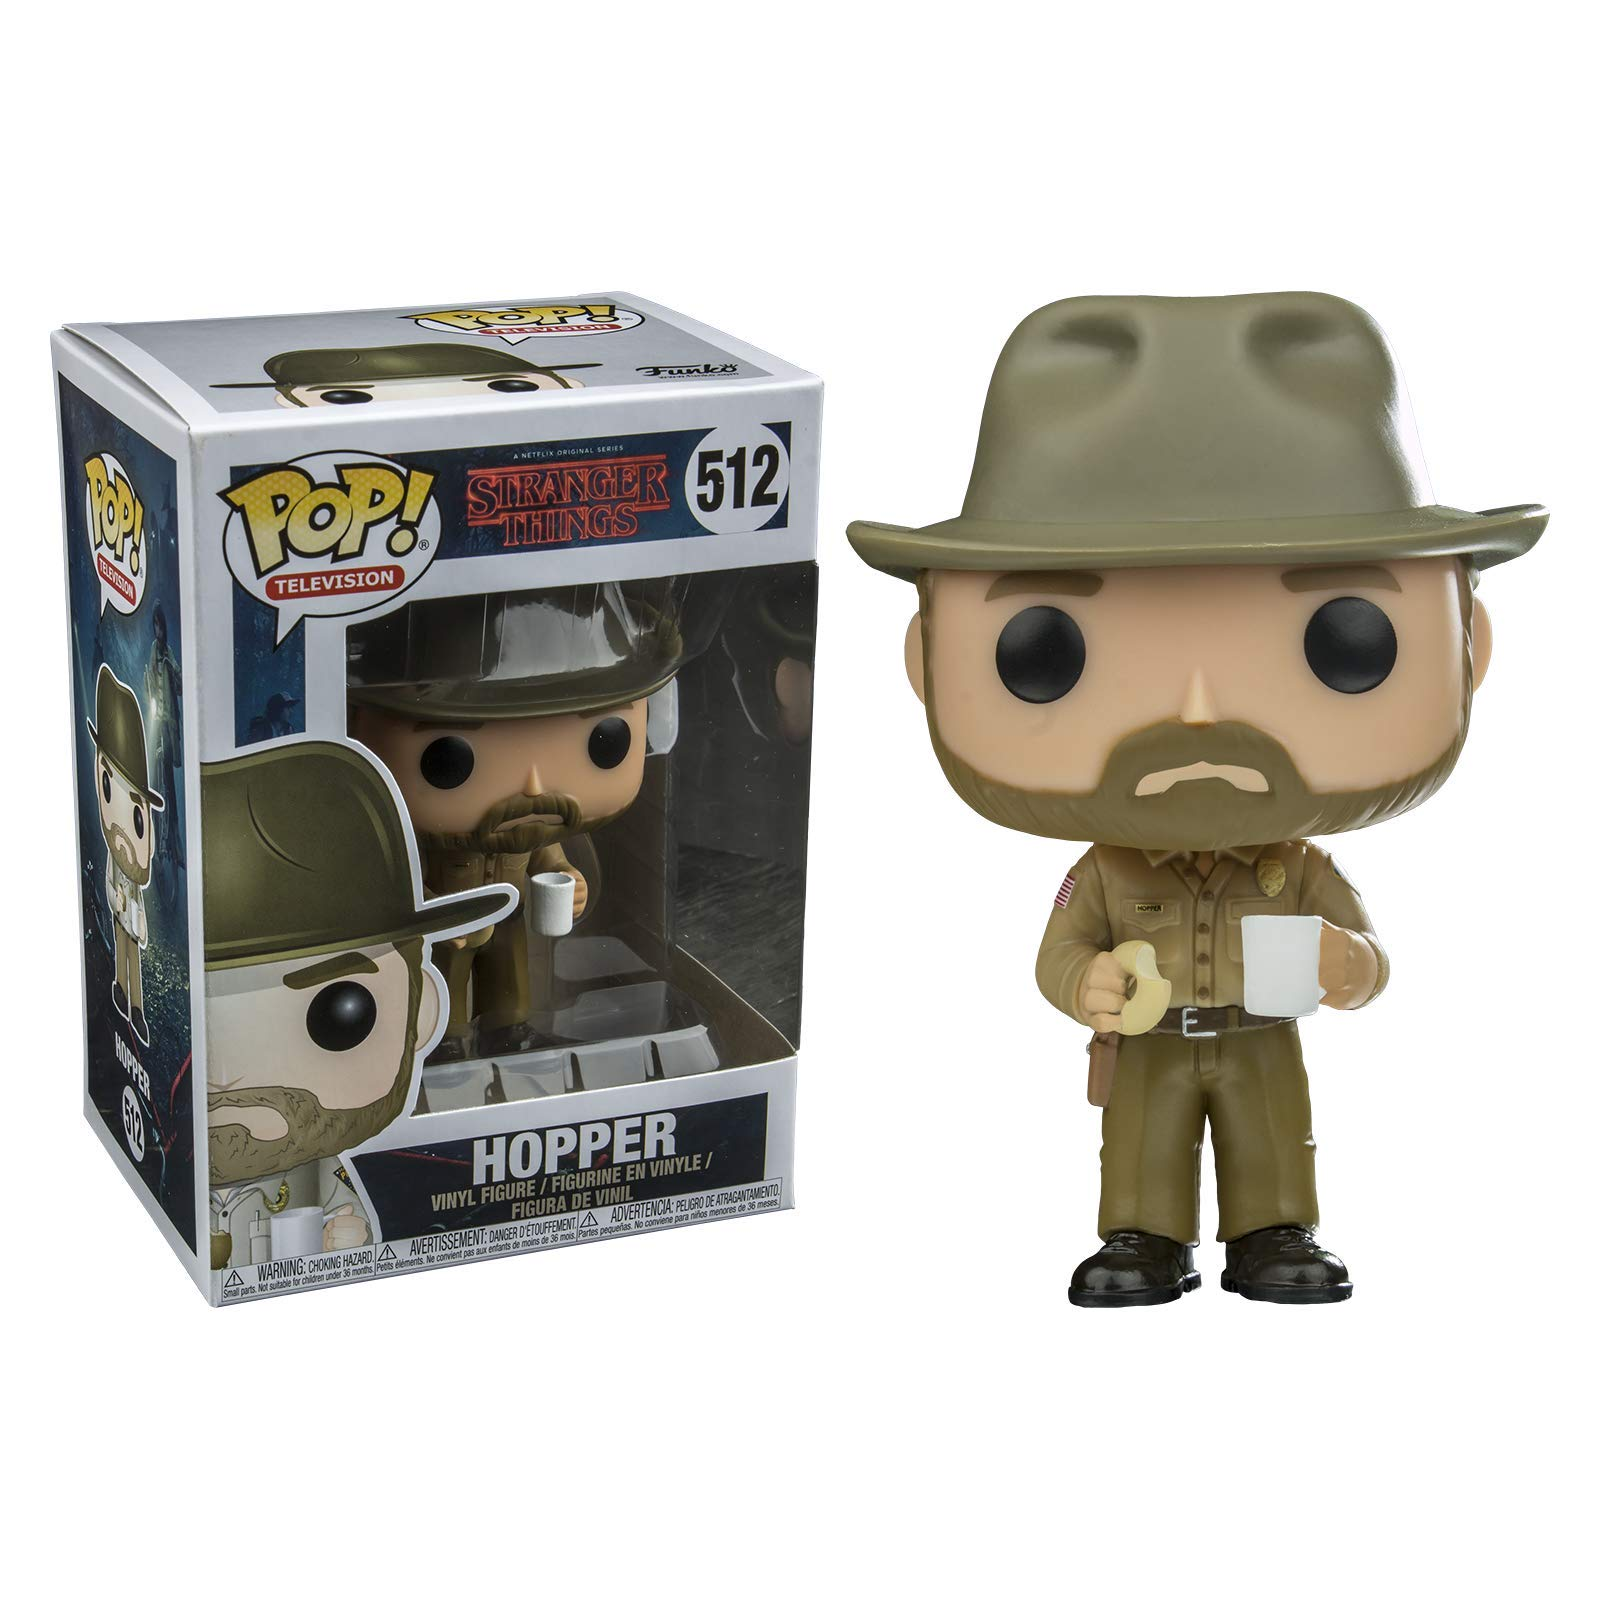 Stranger Things-Funko POP Hopper with Donut Figura de vinilo, multicolor 14425 , color/modelo surtido: Amazon.es: Juguetes y juegos